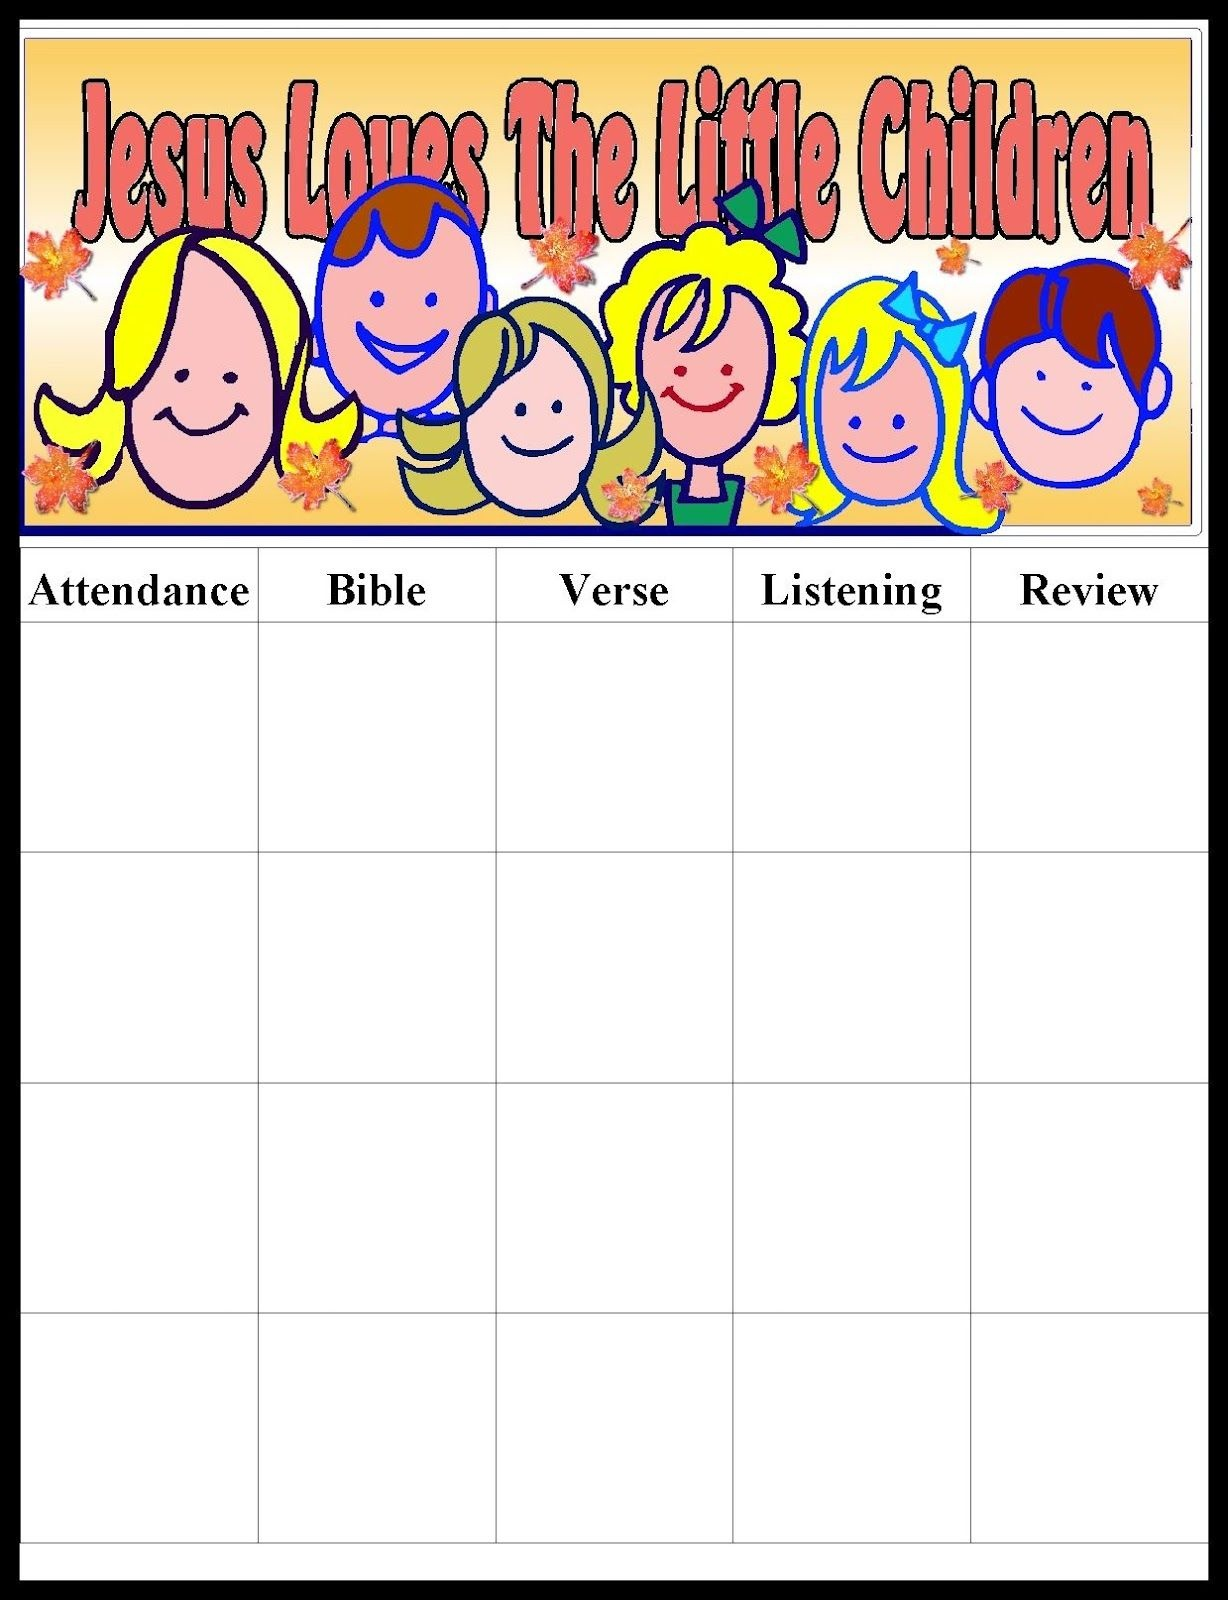 Pinmara Rivera On Sunday School Ideas | Sunday School Kids - Free Printable Sunday School Attendance Sheet